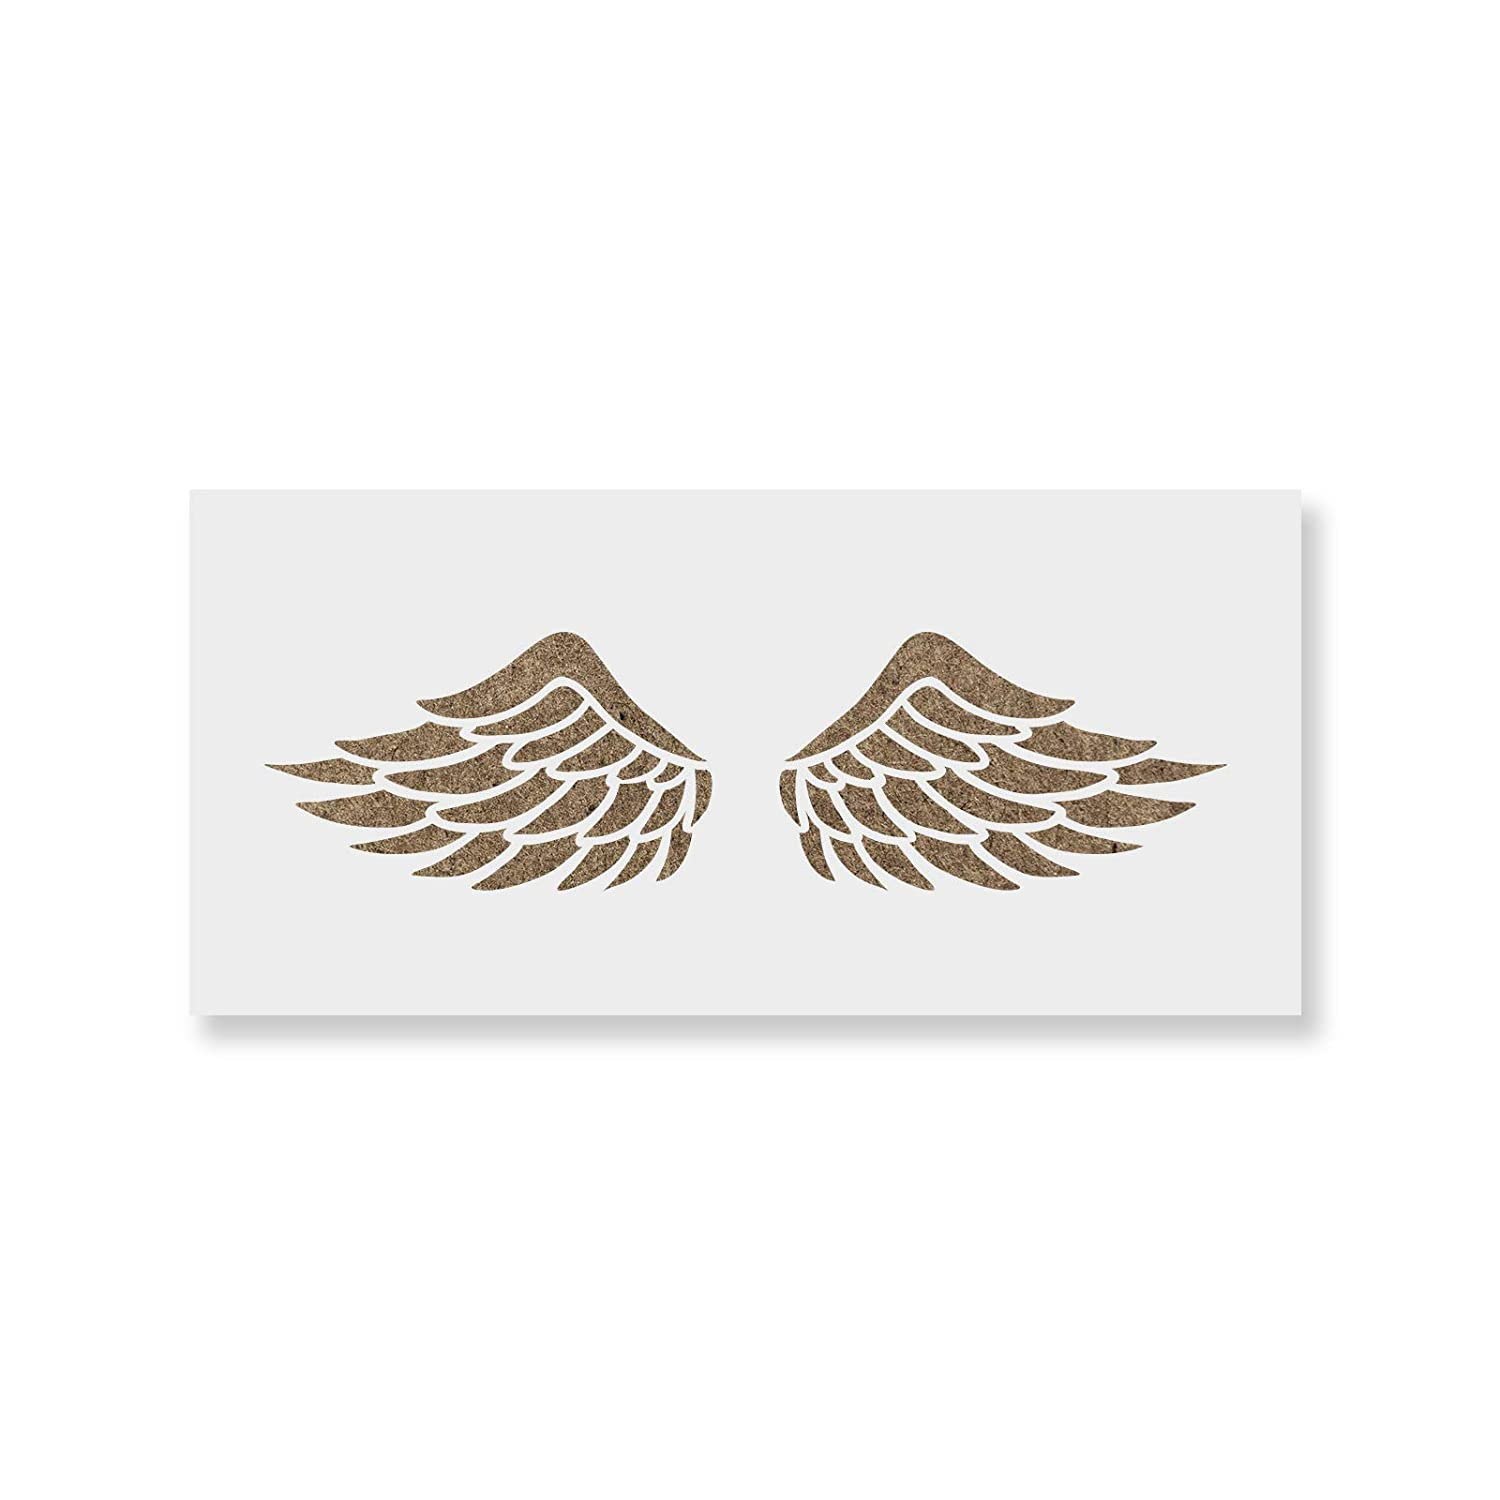 Wings Stencil Template for Walls and Crafts Reusable Stencils for Painting in Small /& Large Sizes